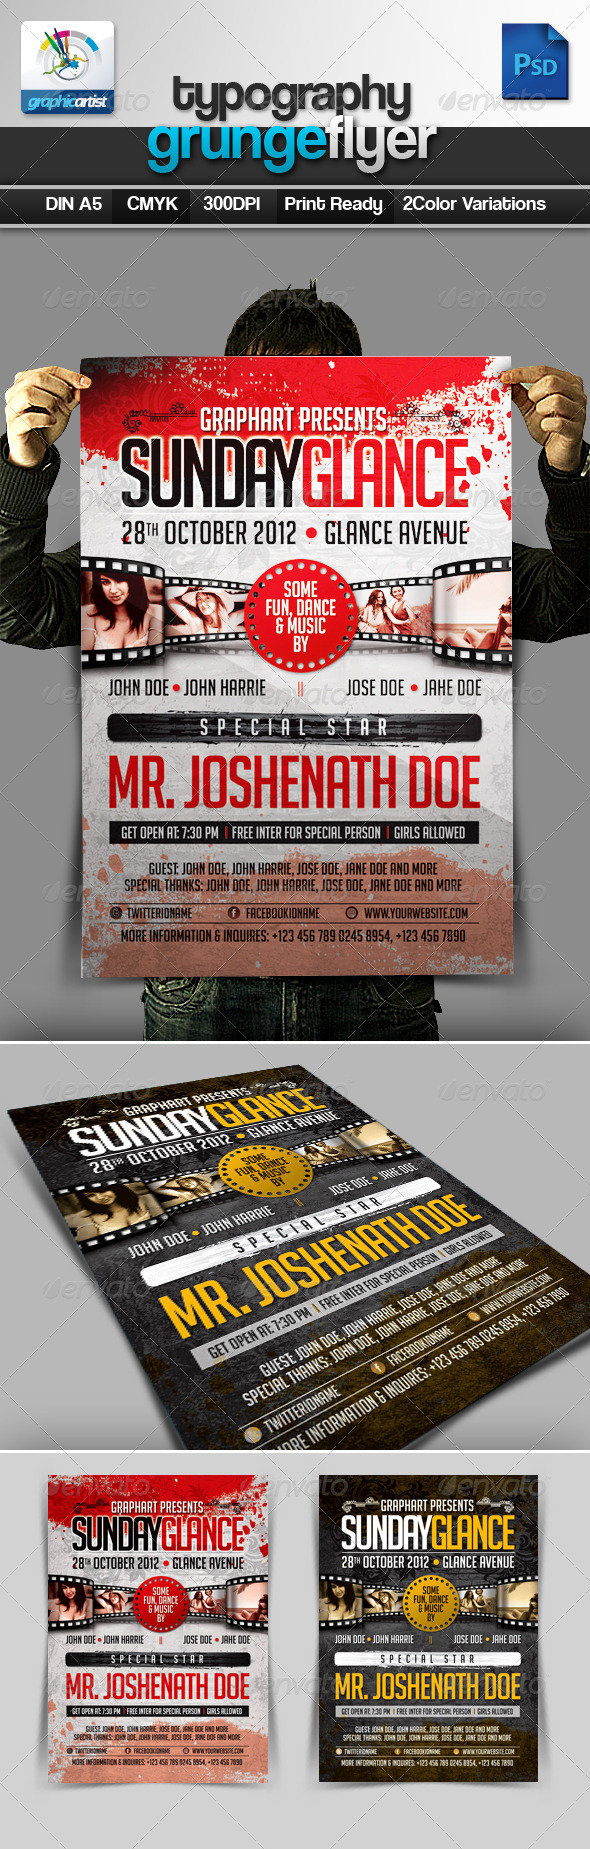 Typography Grunge Flyer - Miscellaneous Events